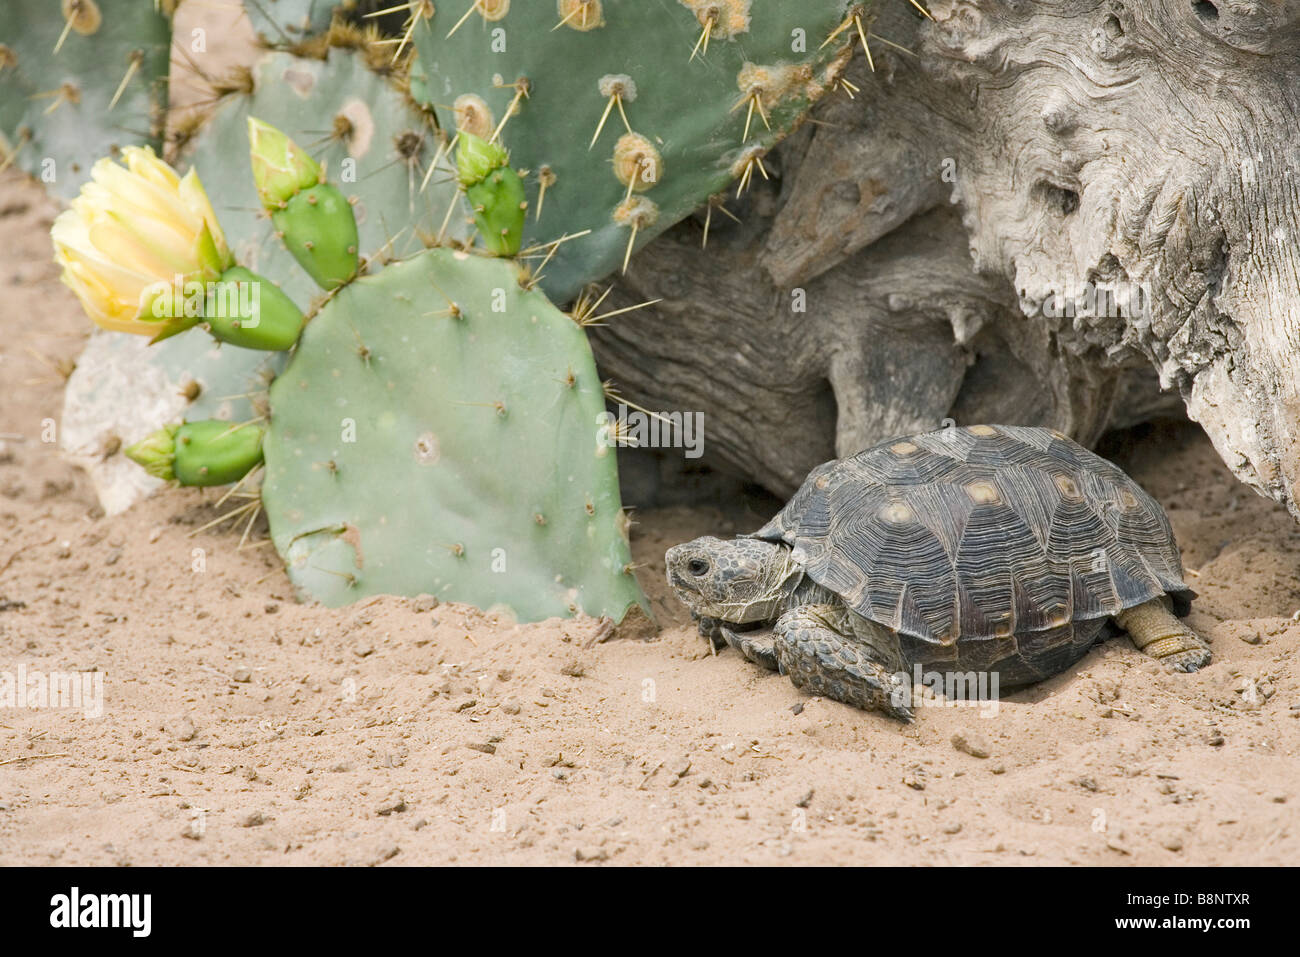 Texas Tortoise Gopherus berlandieri Stock Photo